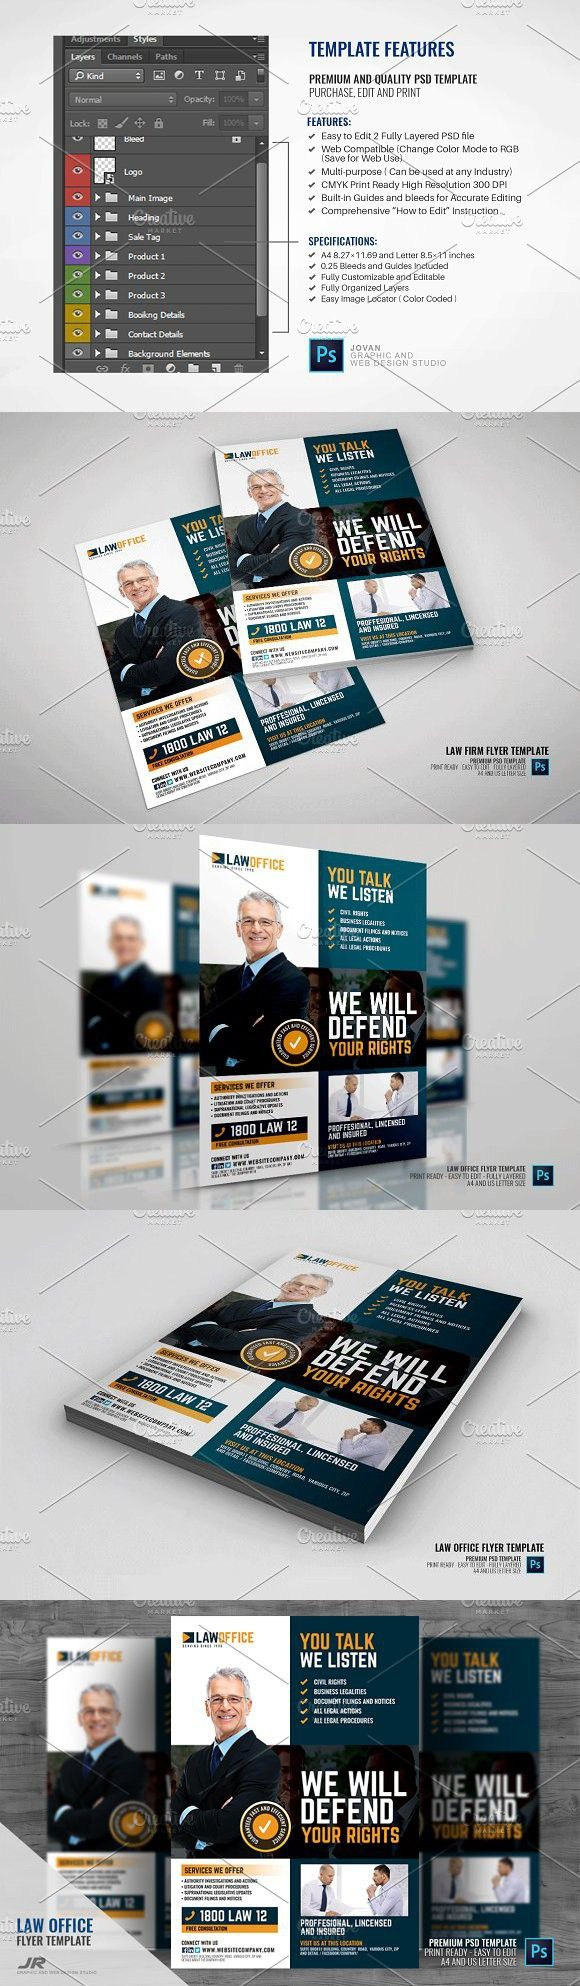 Law and Legal Office Flyer | Flyer design templates, Flyer template ...